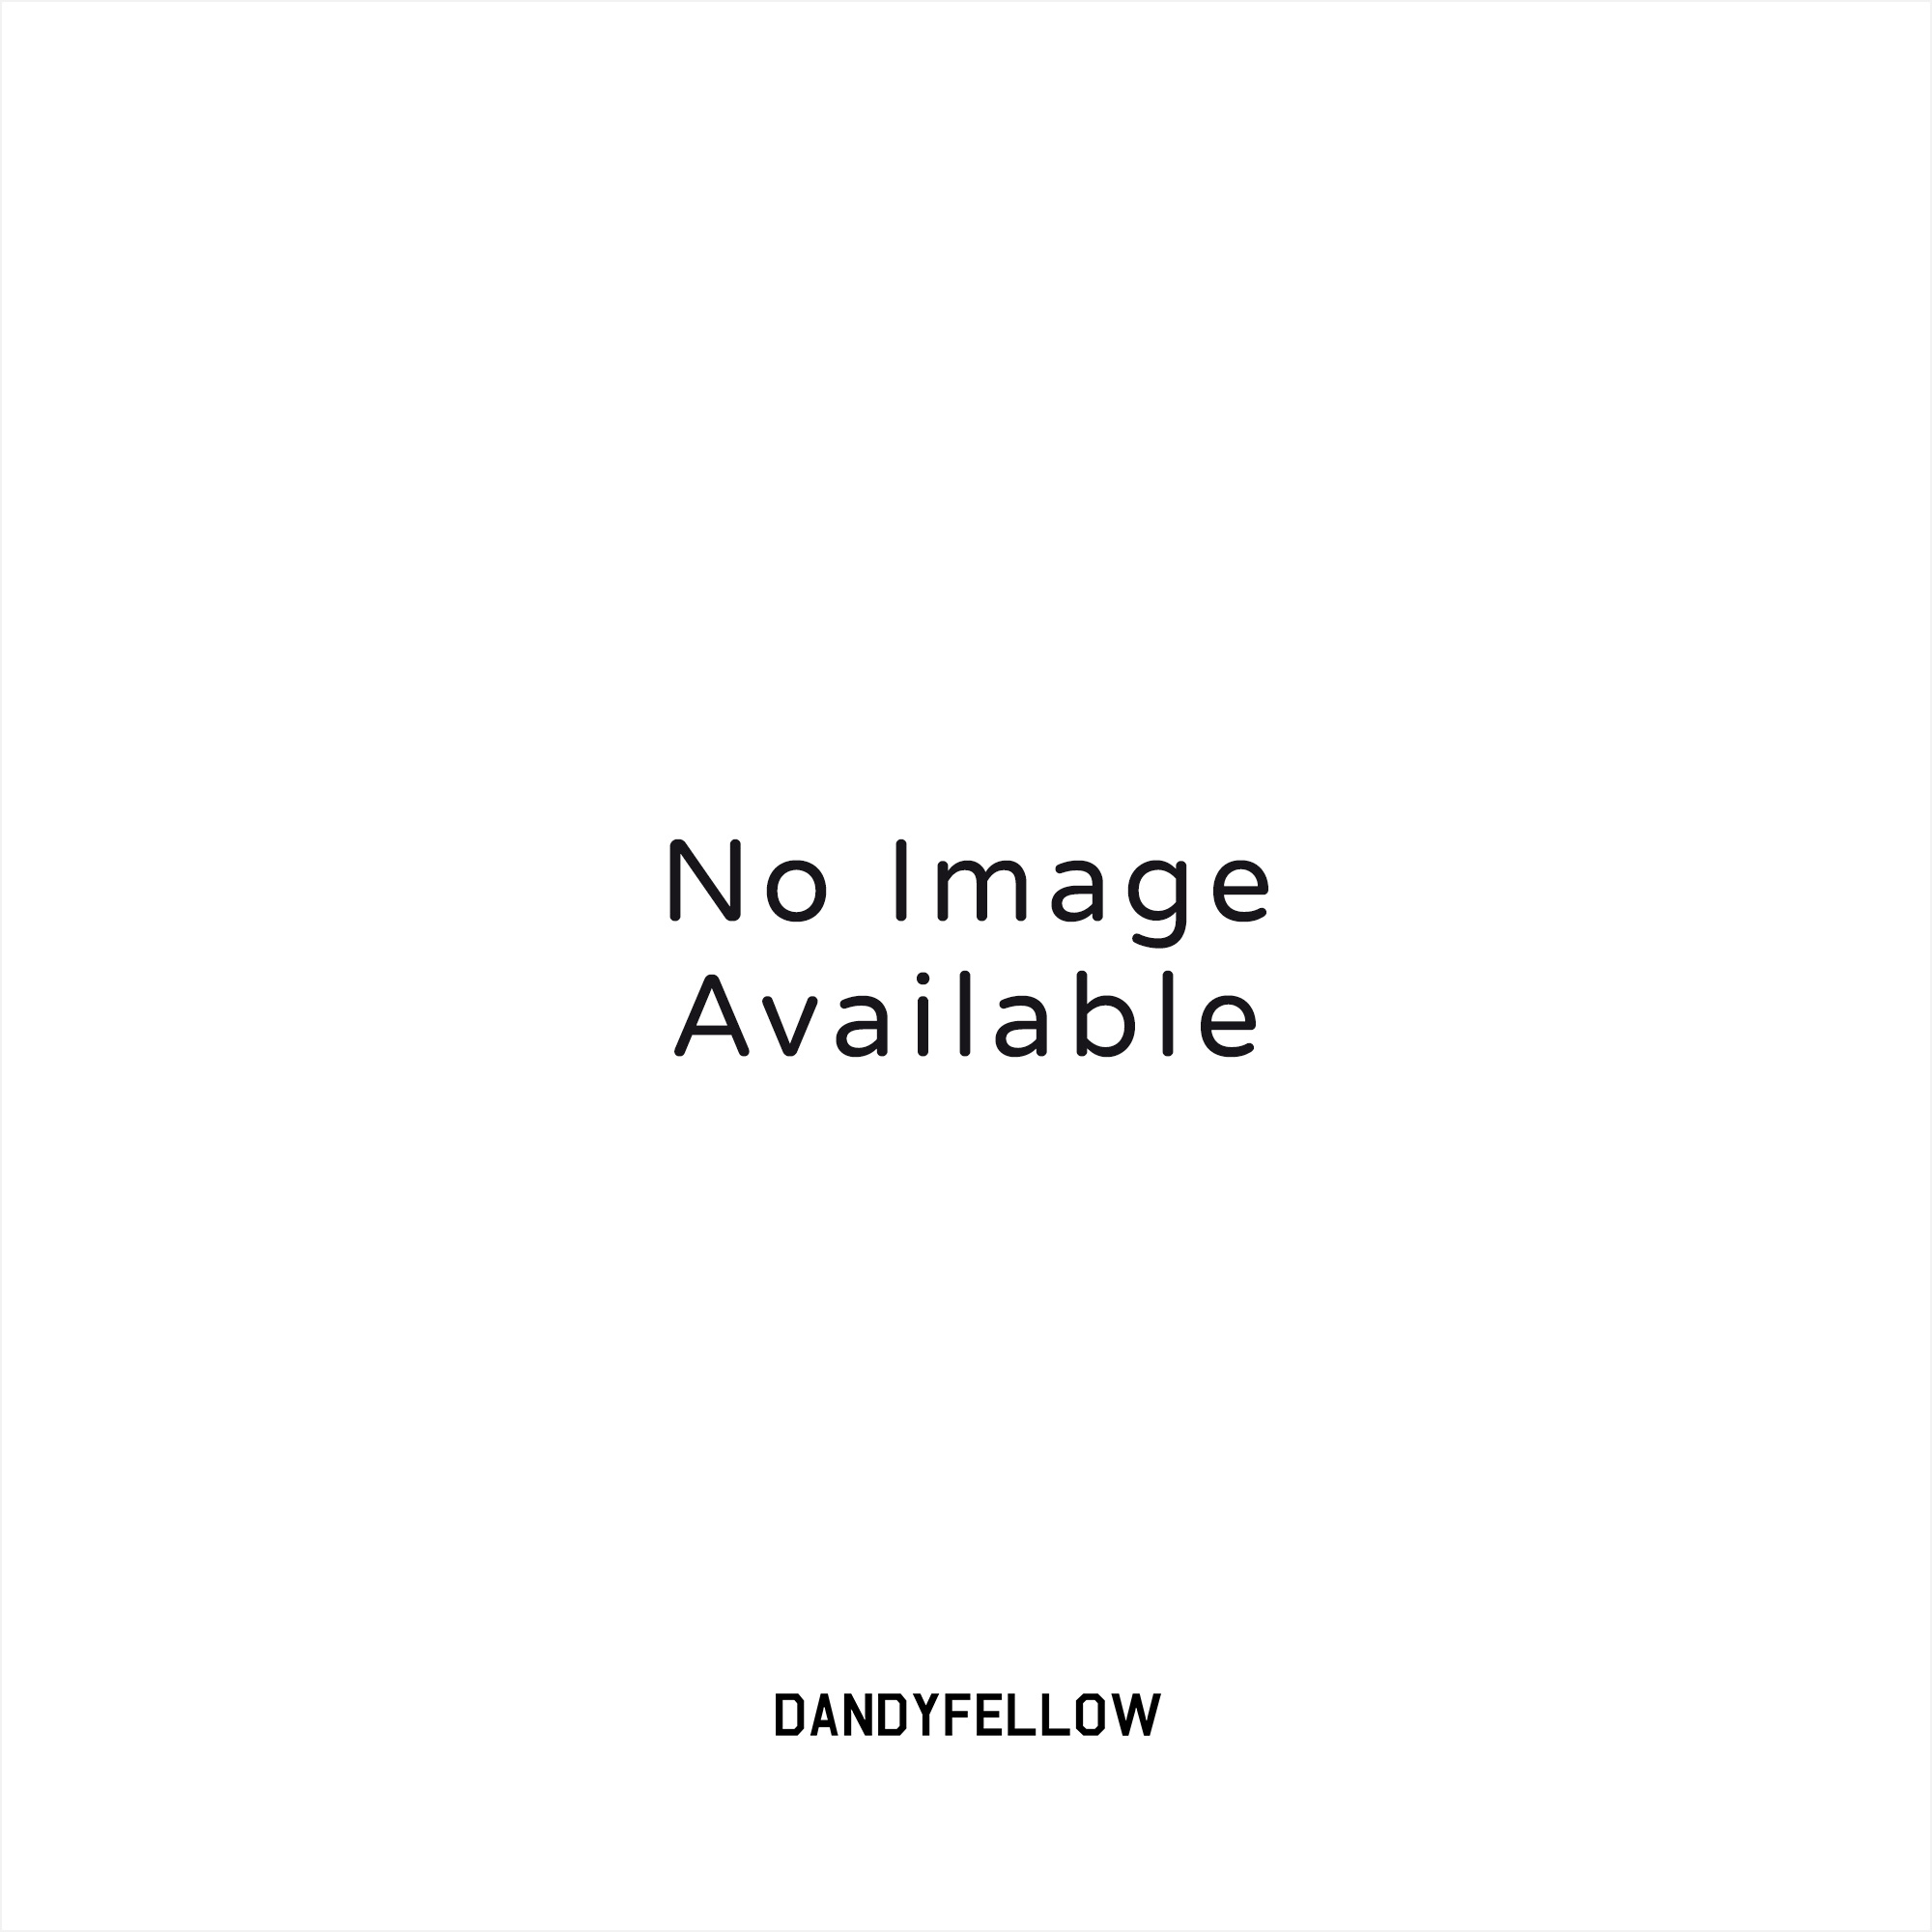 Edwin ED-55 Relaxed Tapered Dark Blue Denim Breeze Used Jeans I010538617F8BP